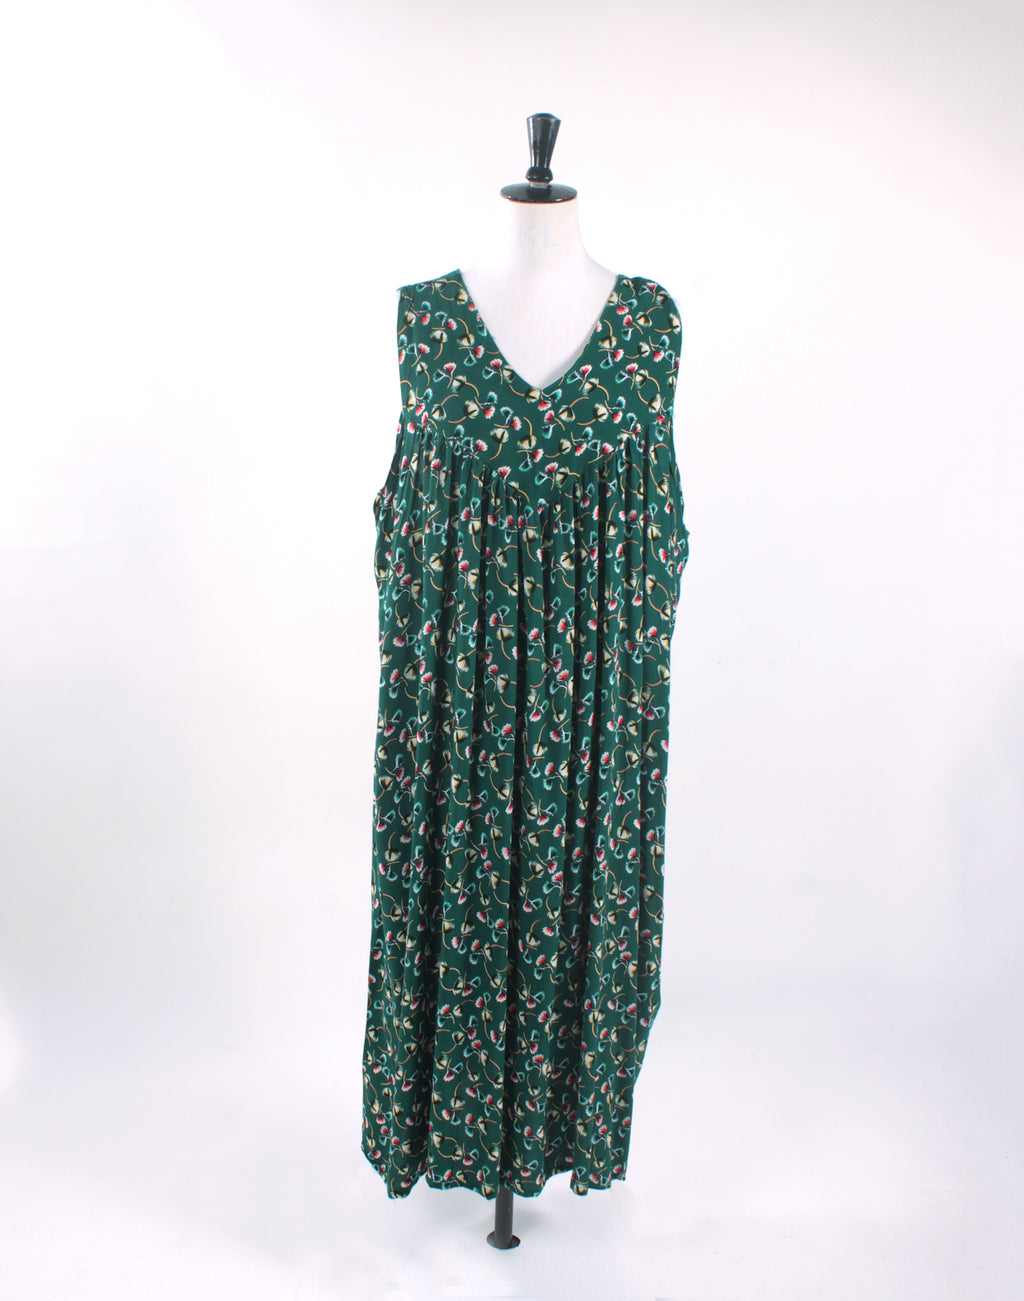 Vintage 90's Green Floral MuMu Dress